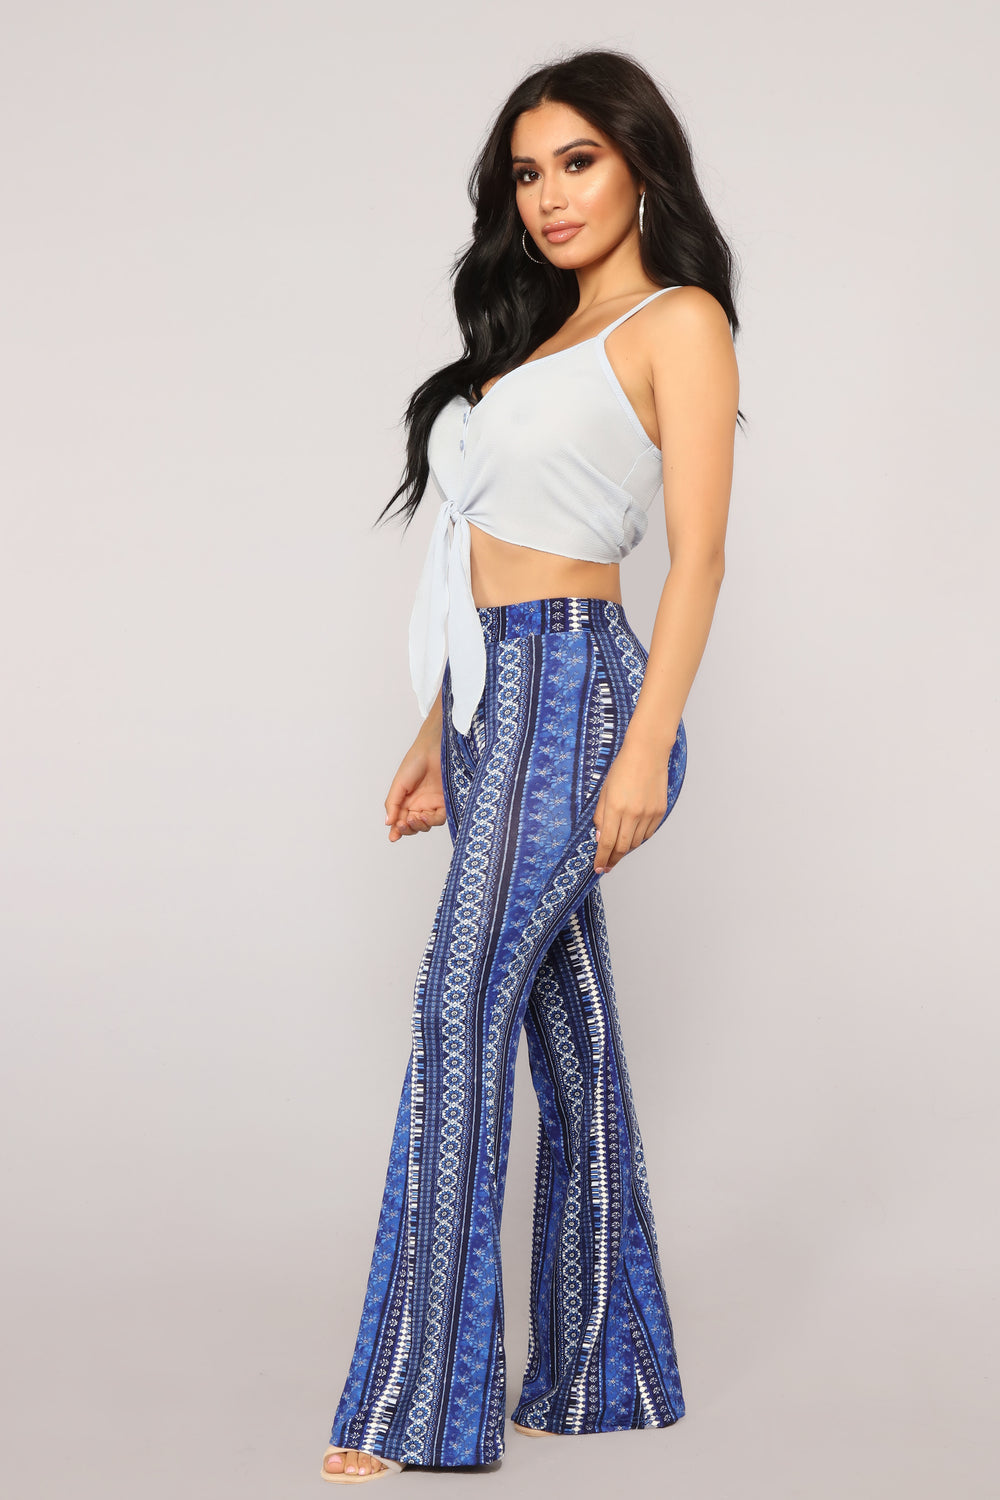 Keep In Line Flare Pants - Blue/White